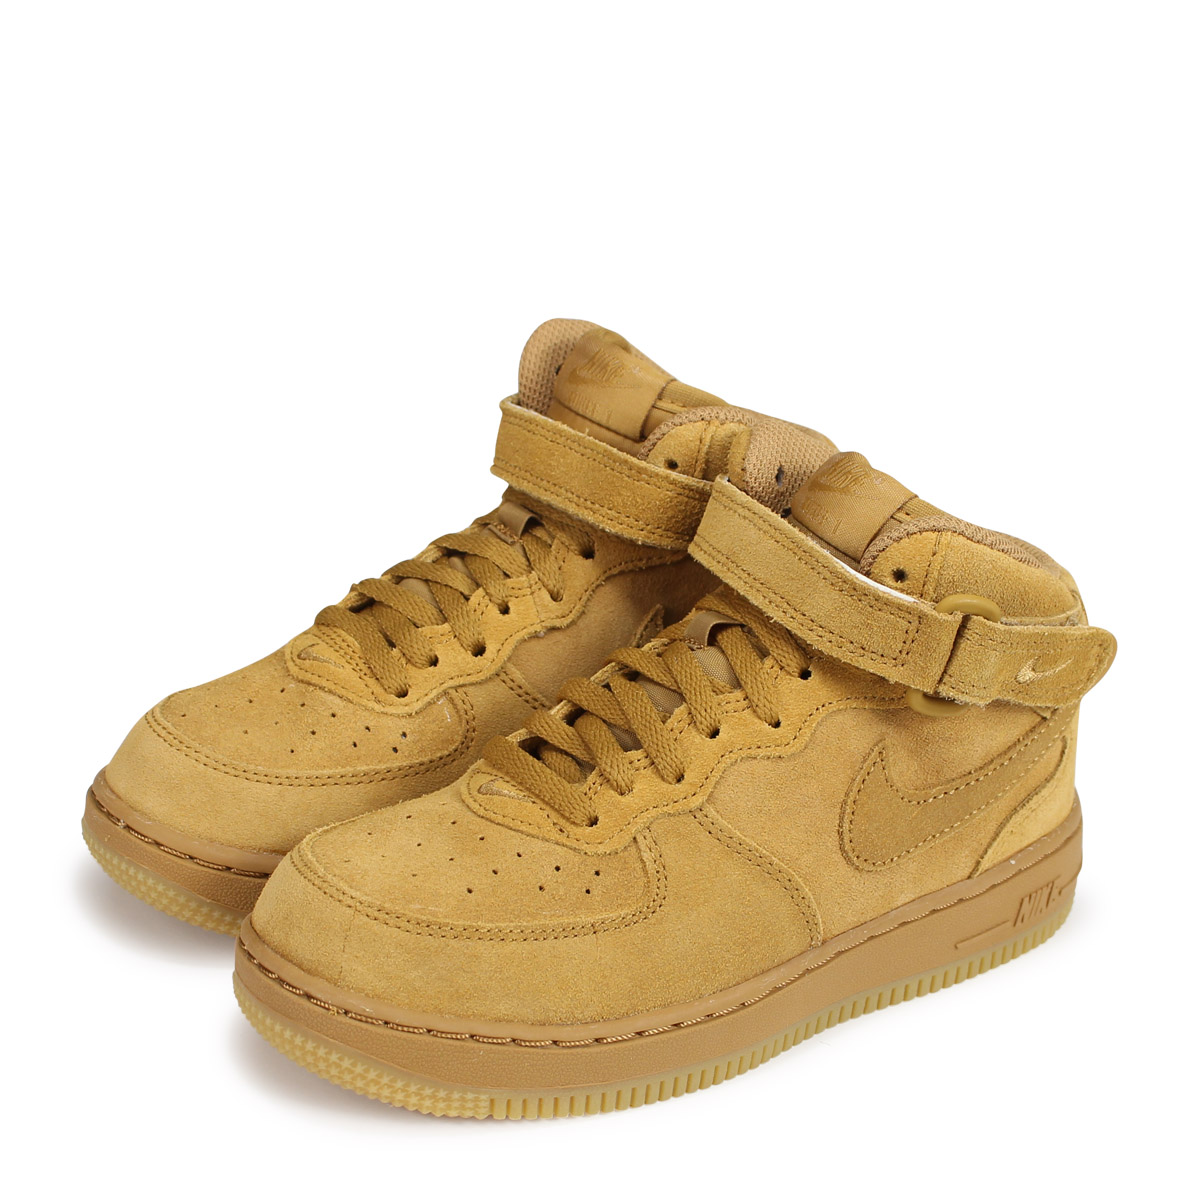 c6ccb51893 NIKE AIR FORCE 1 MID LV8 PS Nike air force 1 kids sneakers 859,337-701 ...